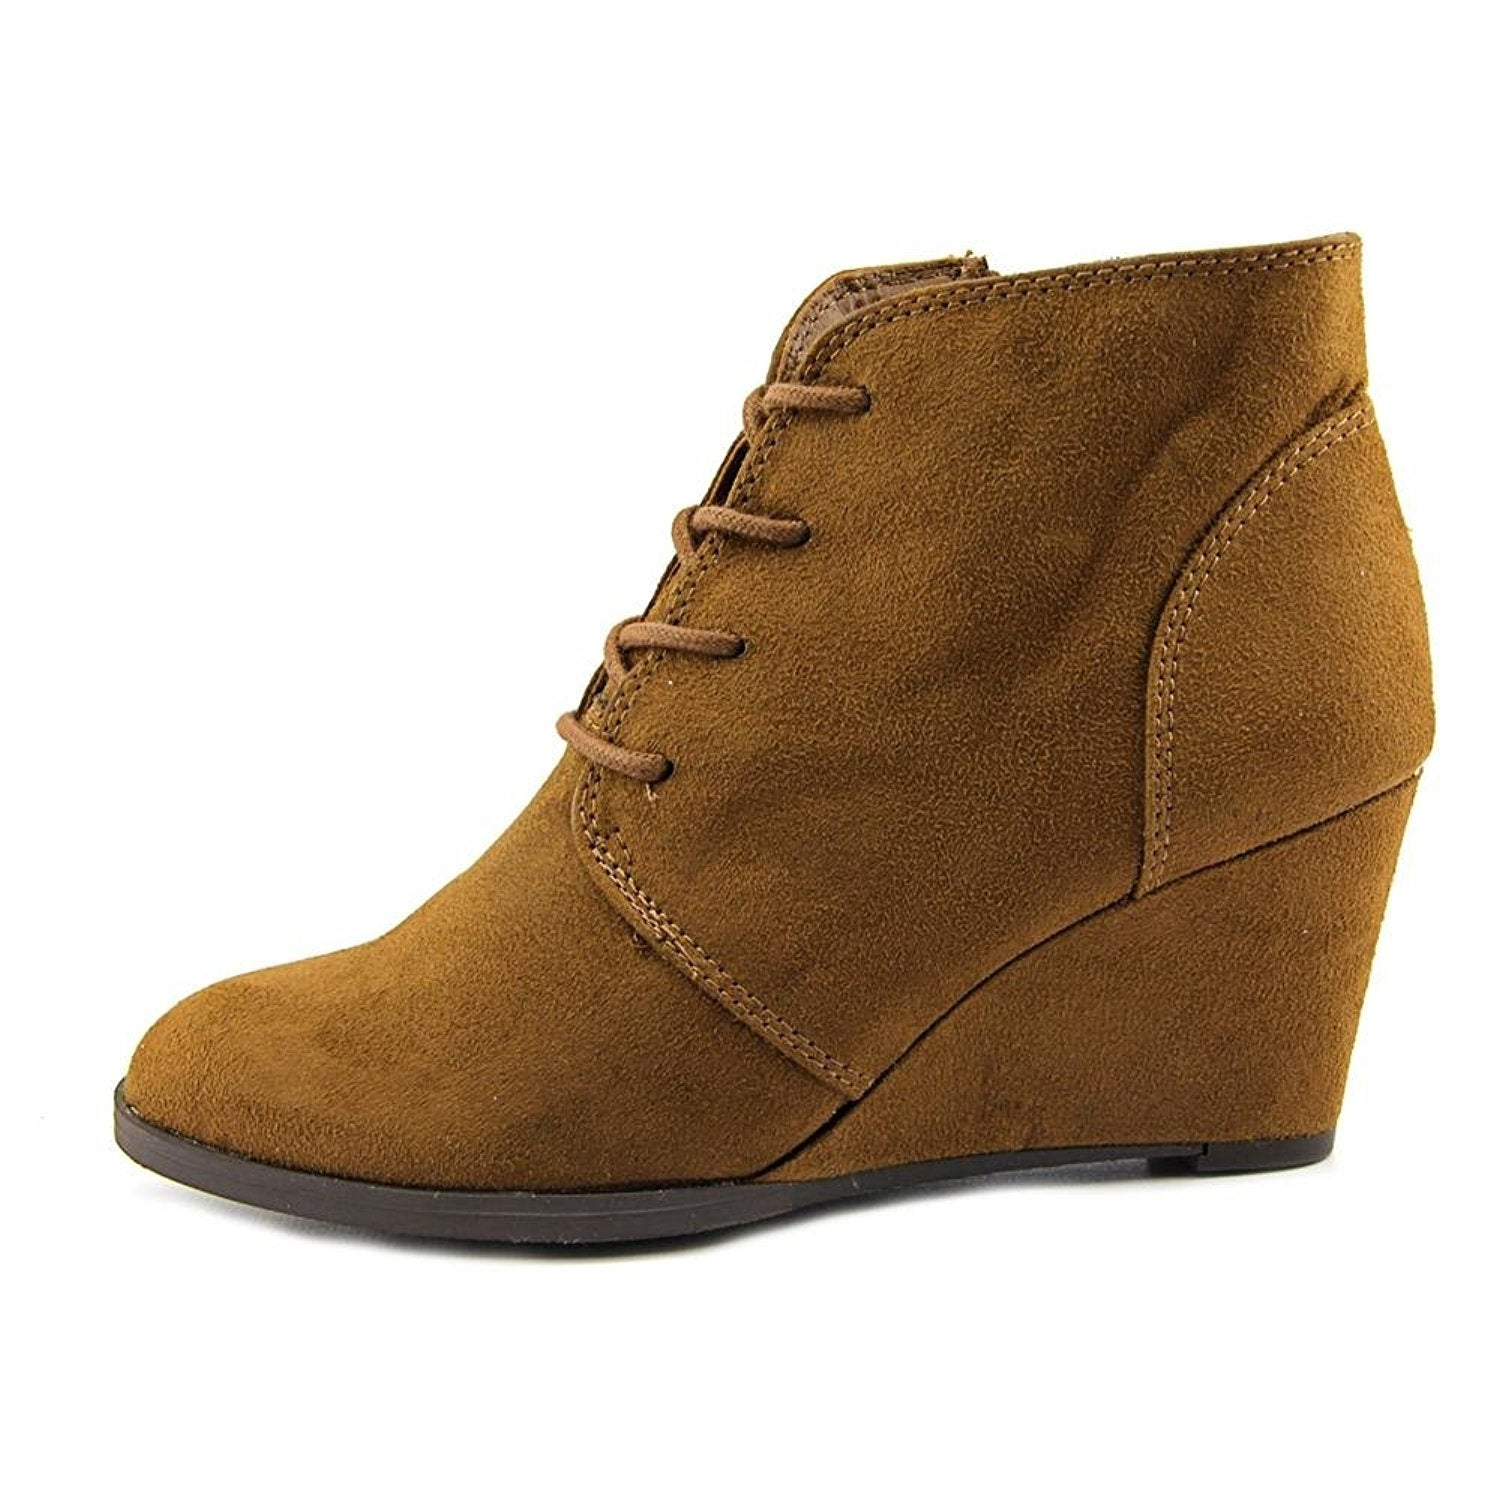 61ed445f6d710 Buy American Rag Women's Boots Online at Overstock | Our Best Women's Shoes  Deals